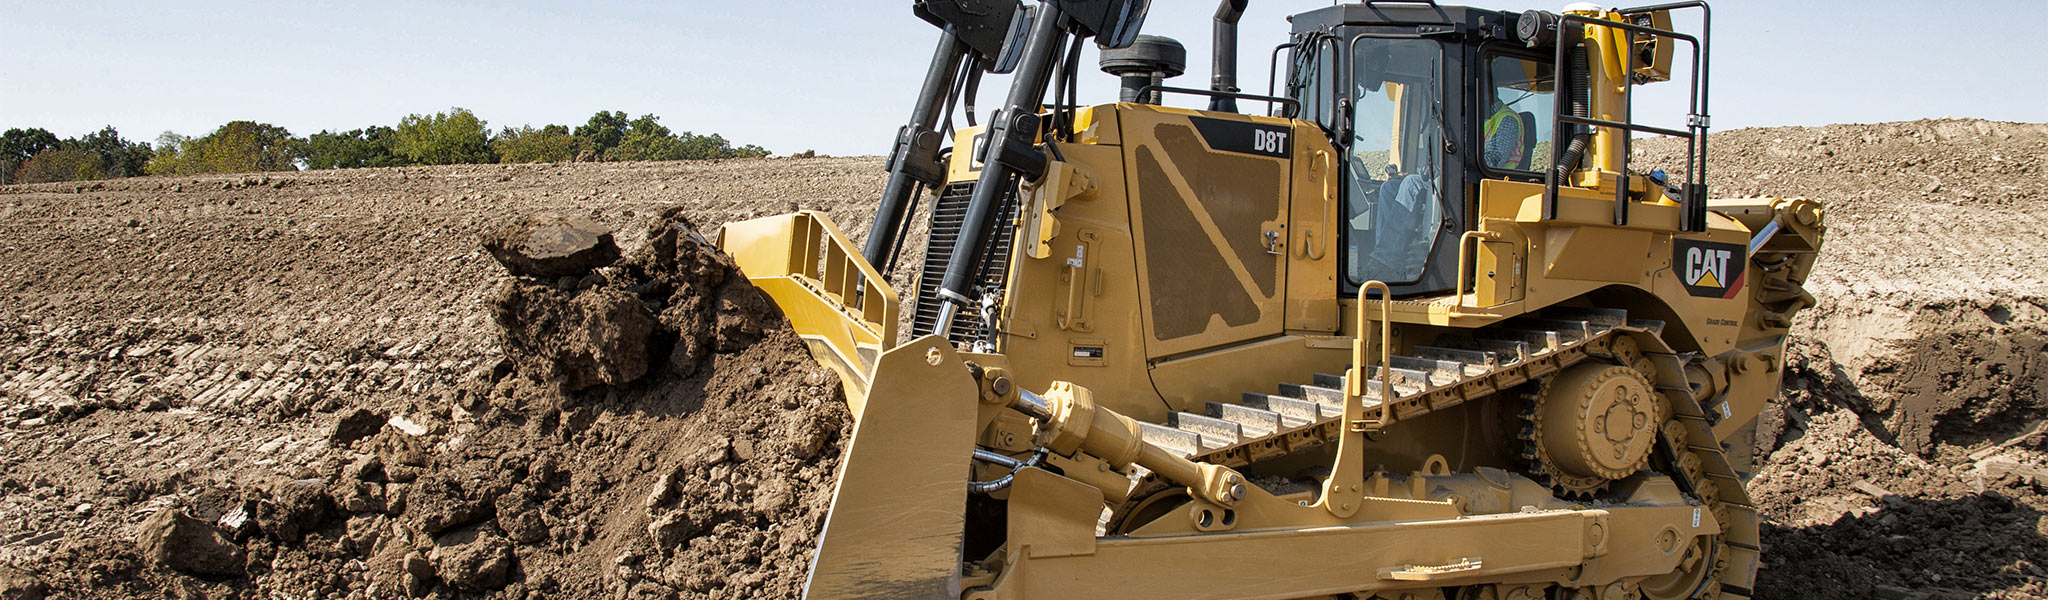 D8T Dozer features lower fuel consumption